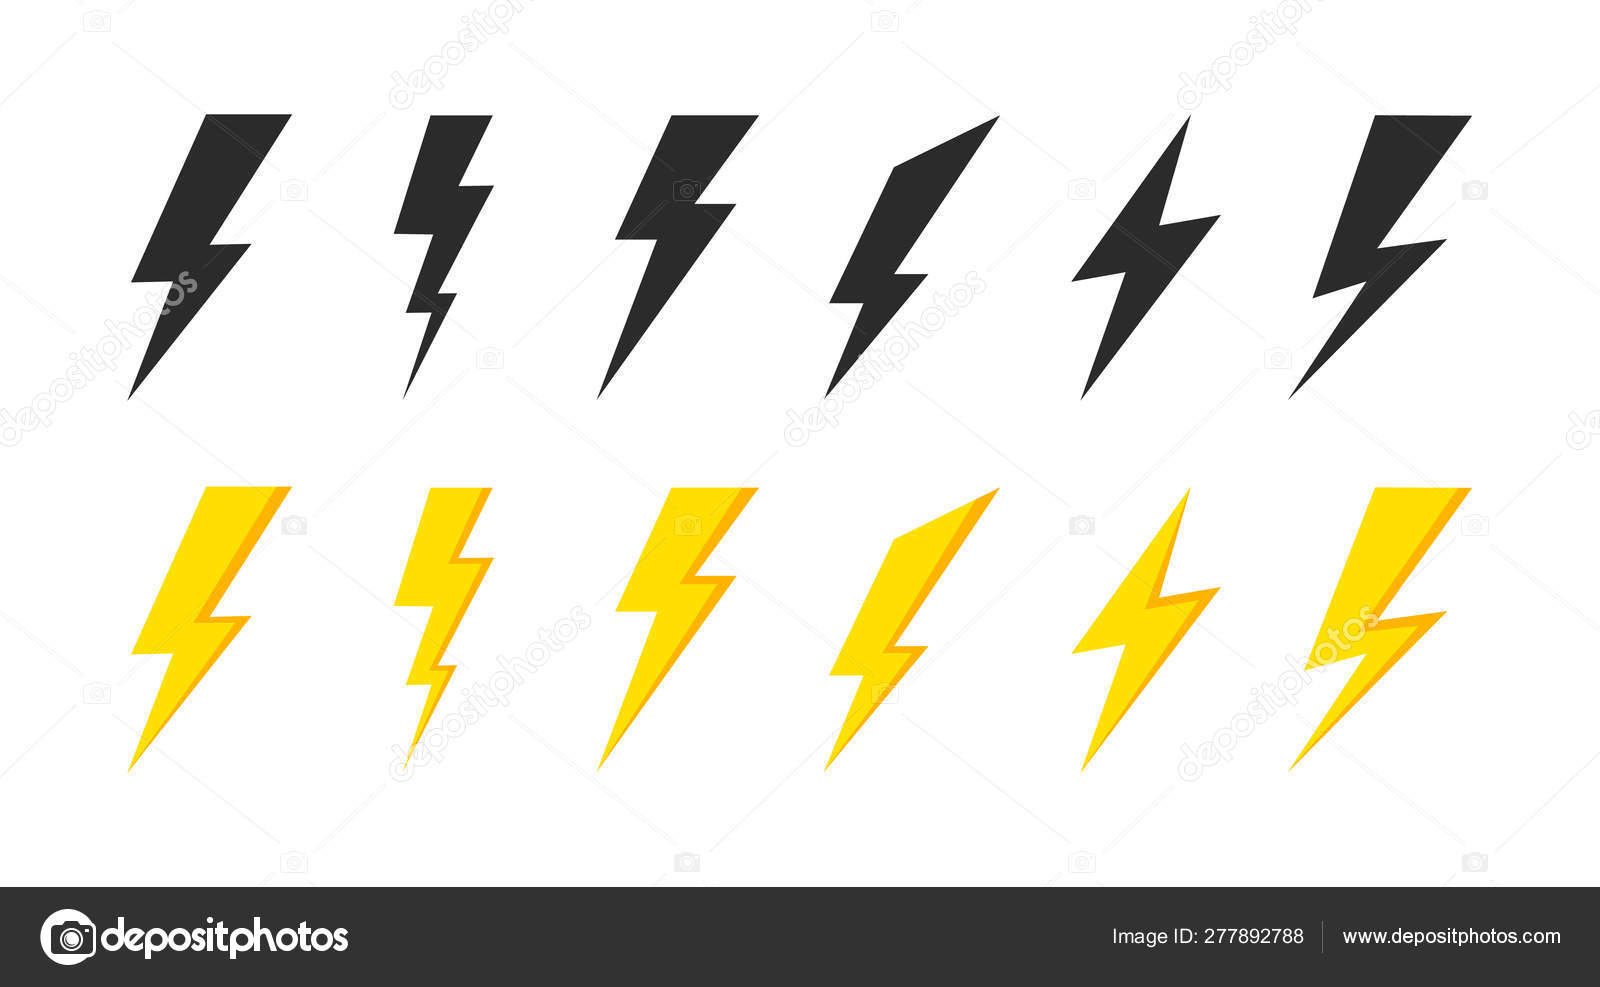 Lightning Icons Set Thunder And Bolt Flash Icon Lightning Bolt Black And Yellow Silhouette Vector Illustration Stock Vector C Sergii19 I Ua 277892788